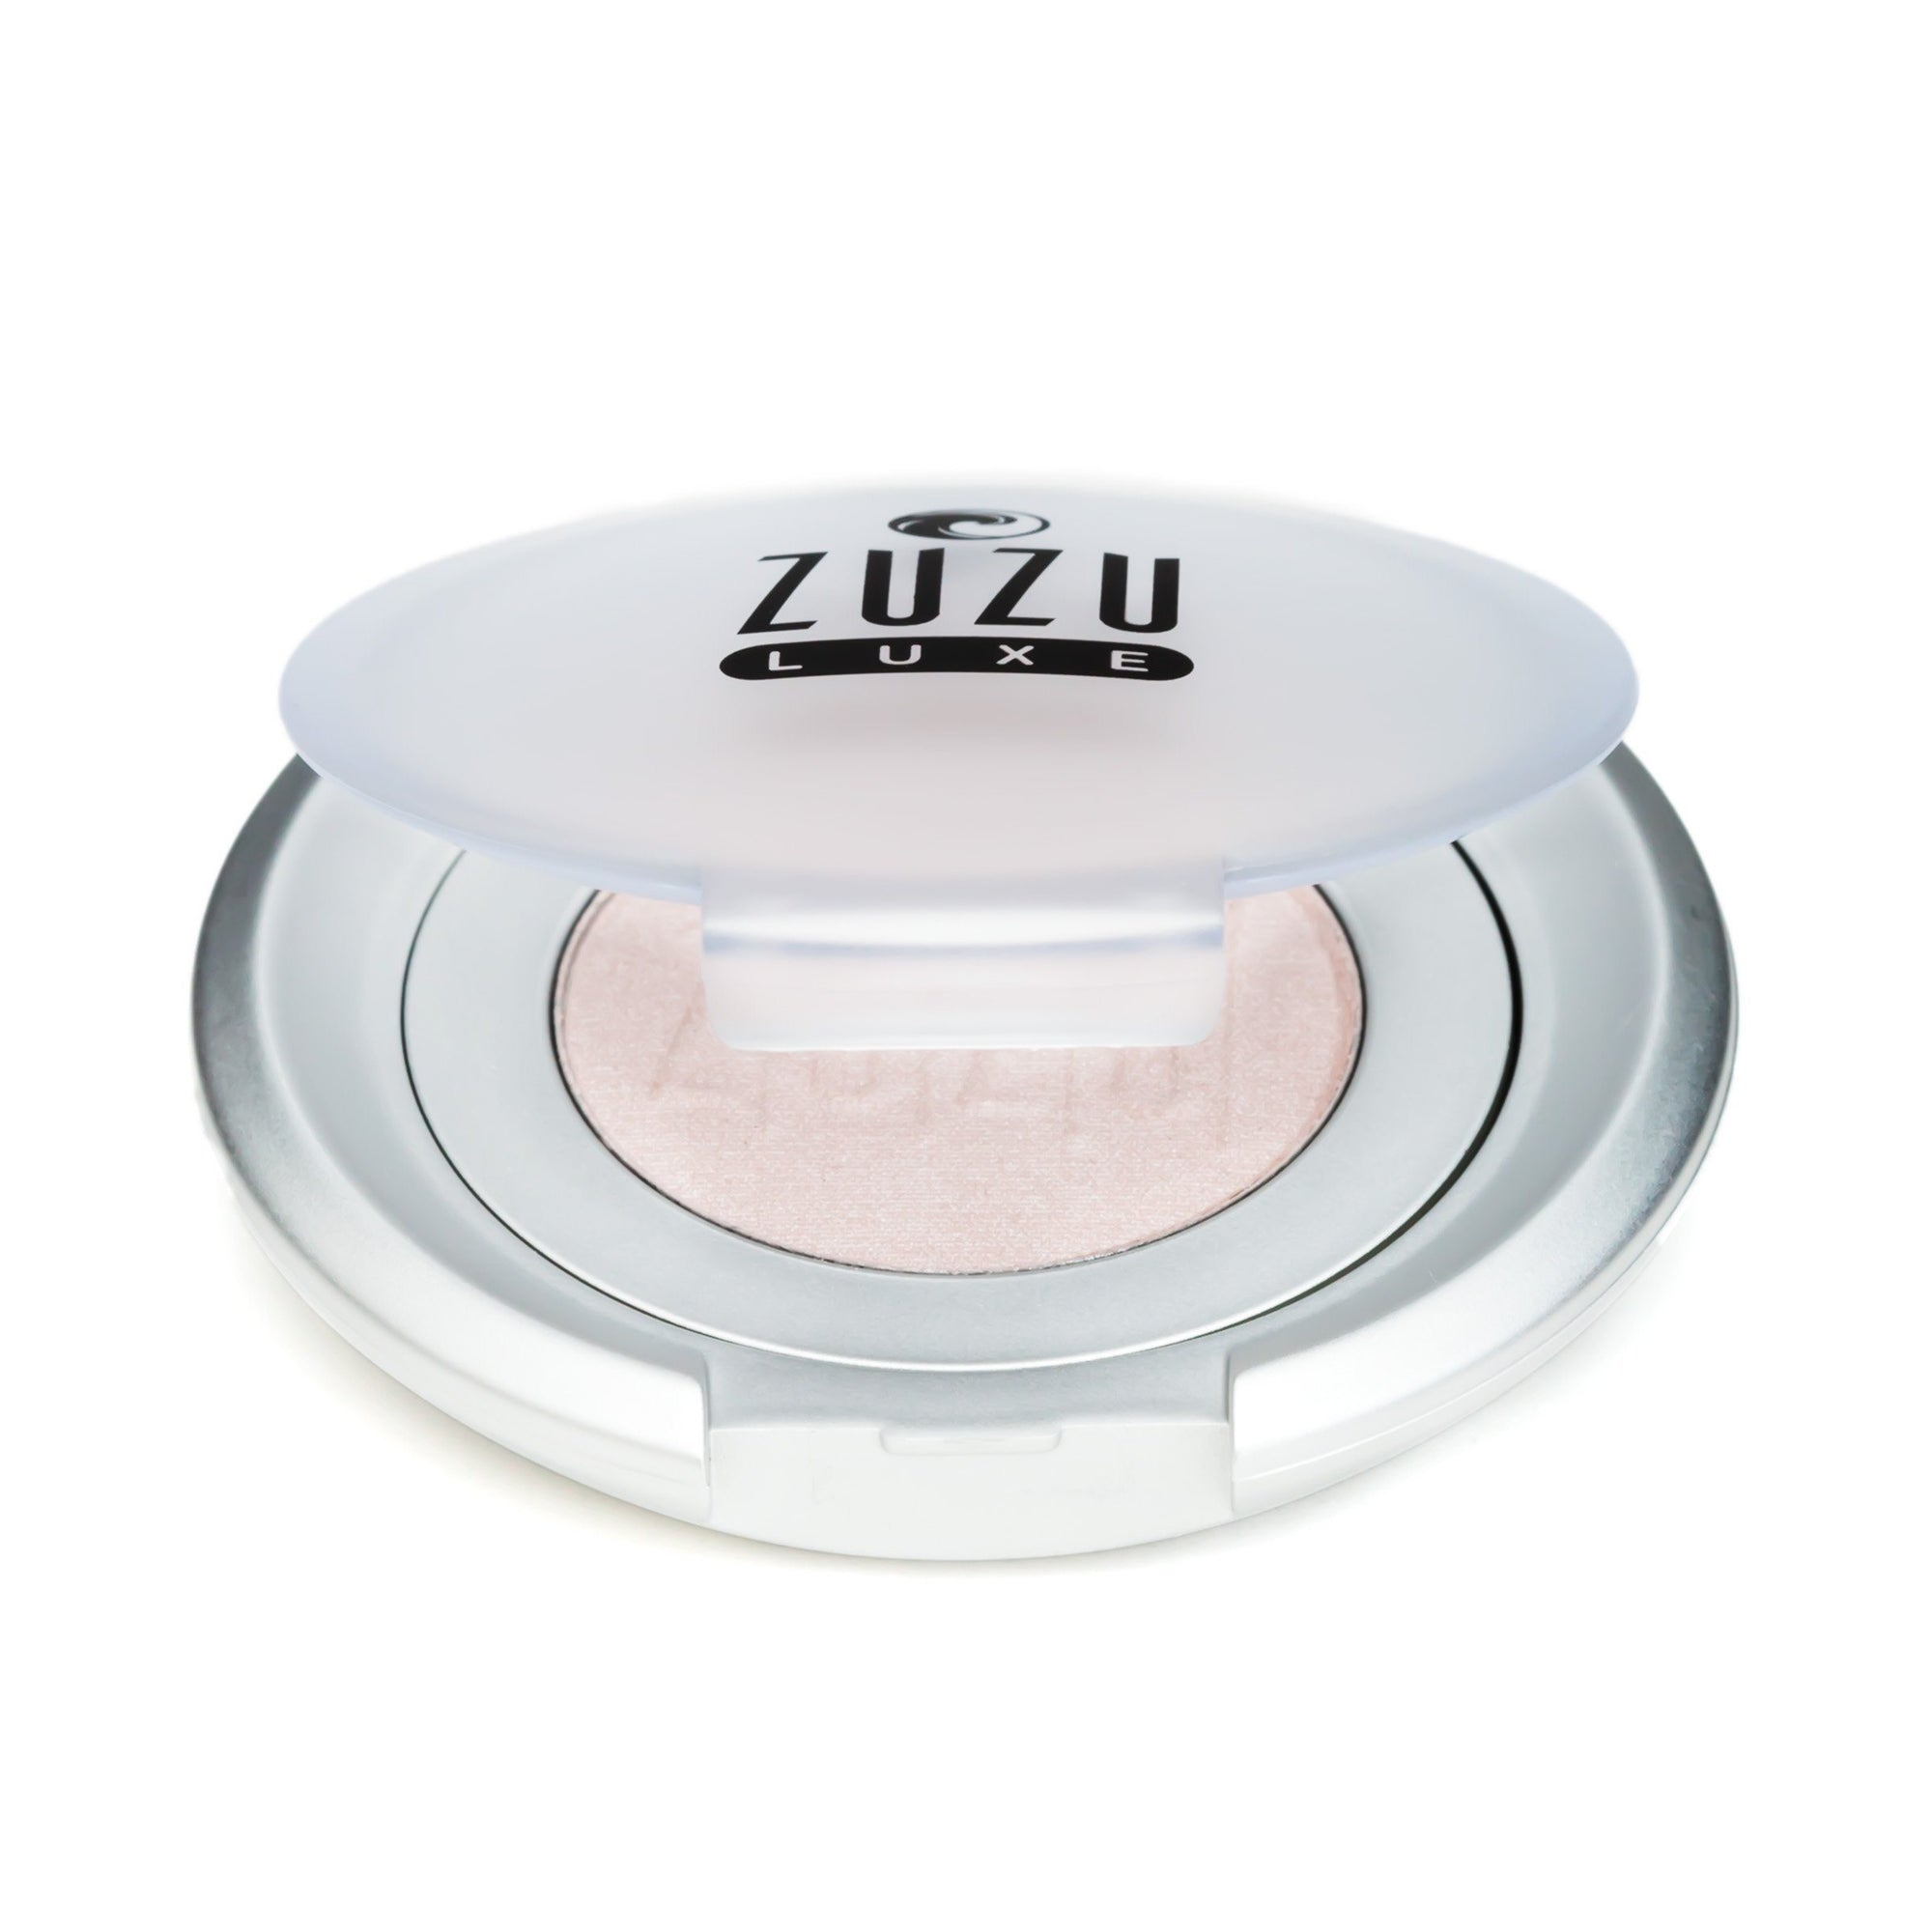 Beauty & Skin Care - Zuzu Luxe - Vegan Eyeshadow, Platinum